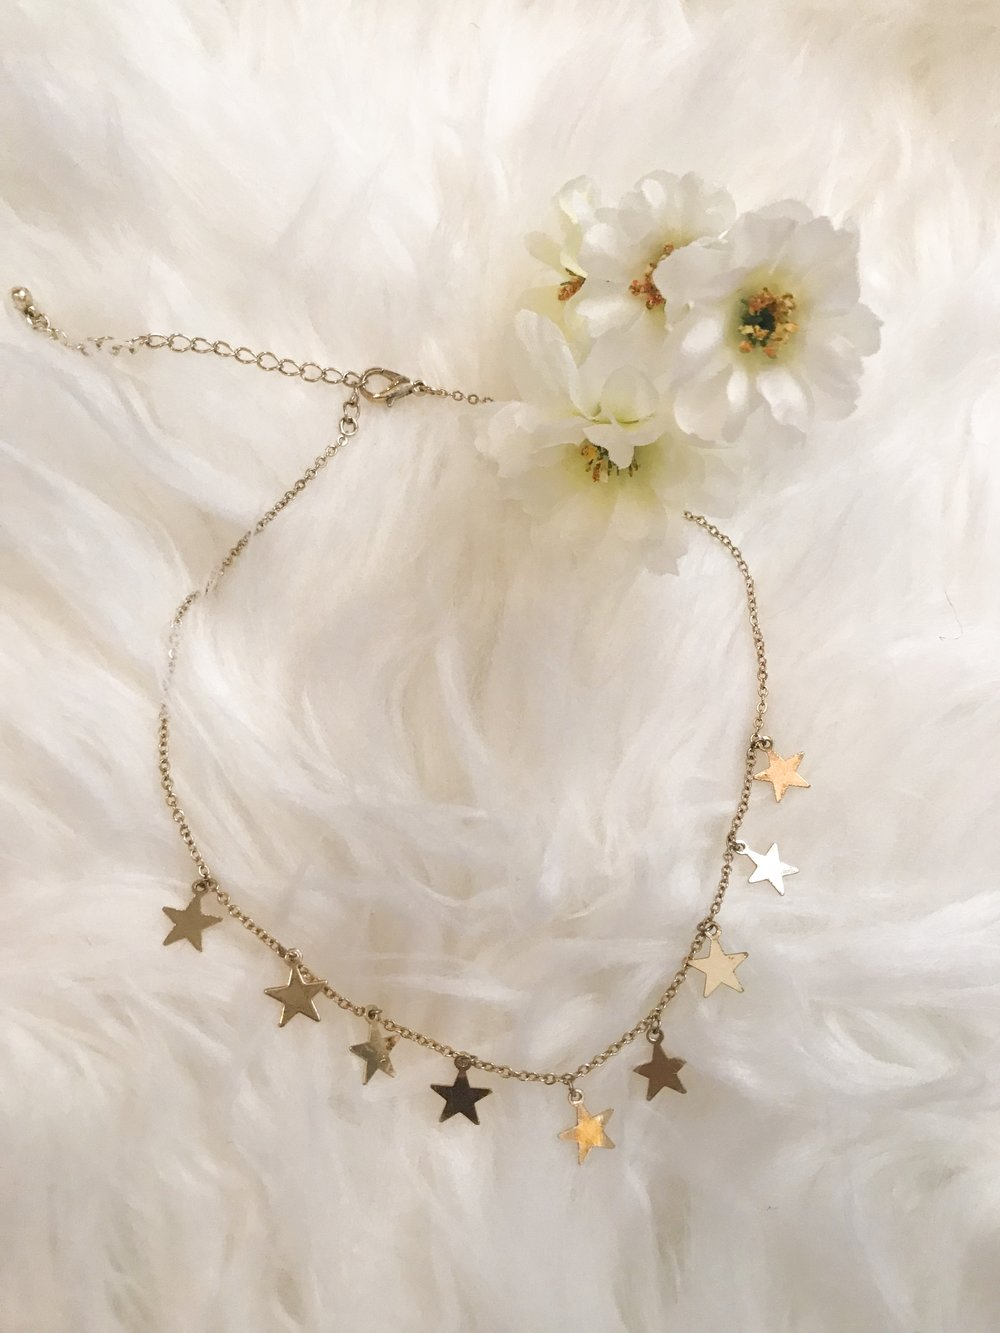 Star Choker $4.90 - Forever 21 - This right here is my most asked about piece of jewelry! Every time I wear it I get compliments on it and asked where it's from! I wear it with almost every outfit! Definitely my favorite choker, and you can't beat that price!